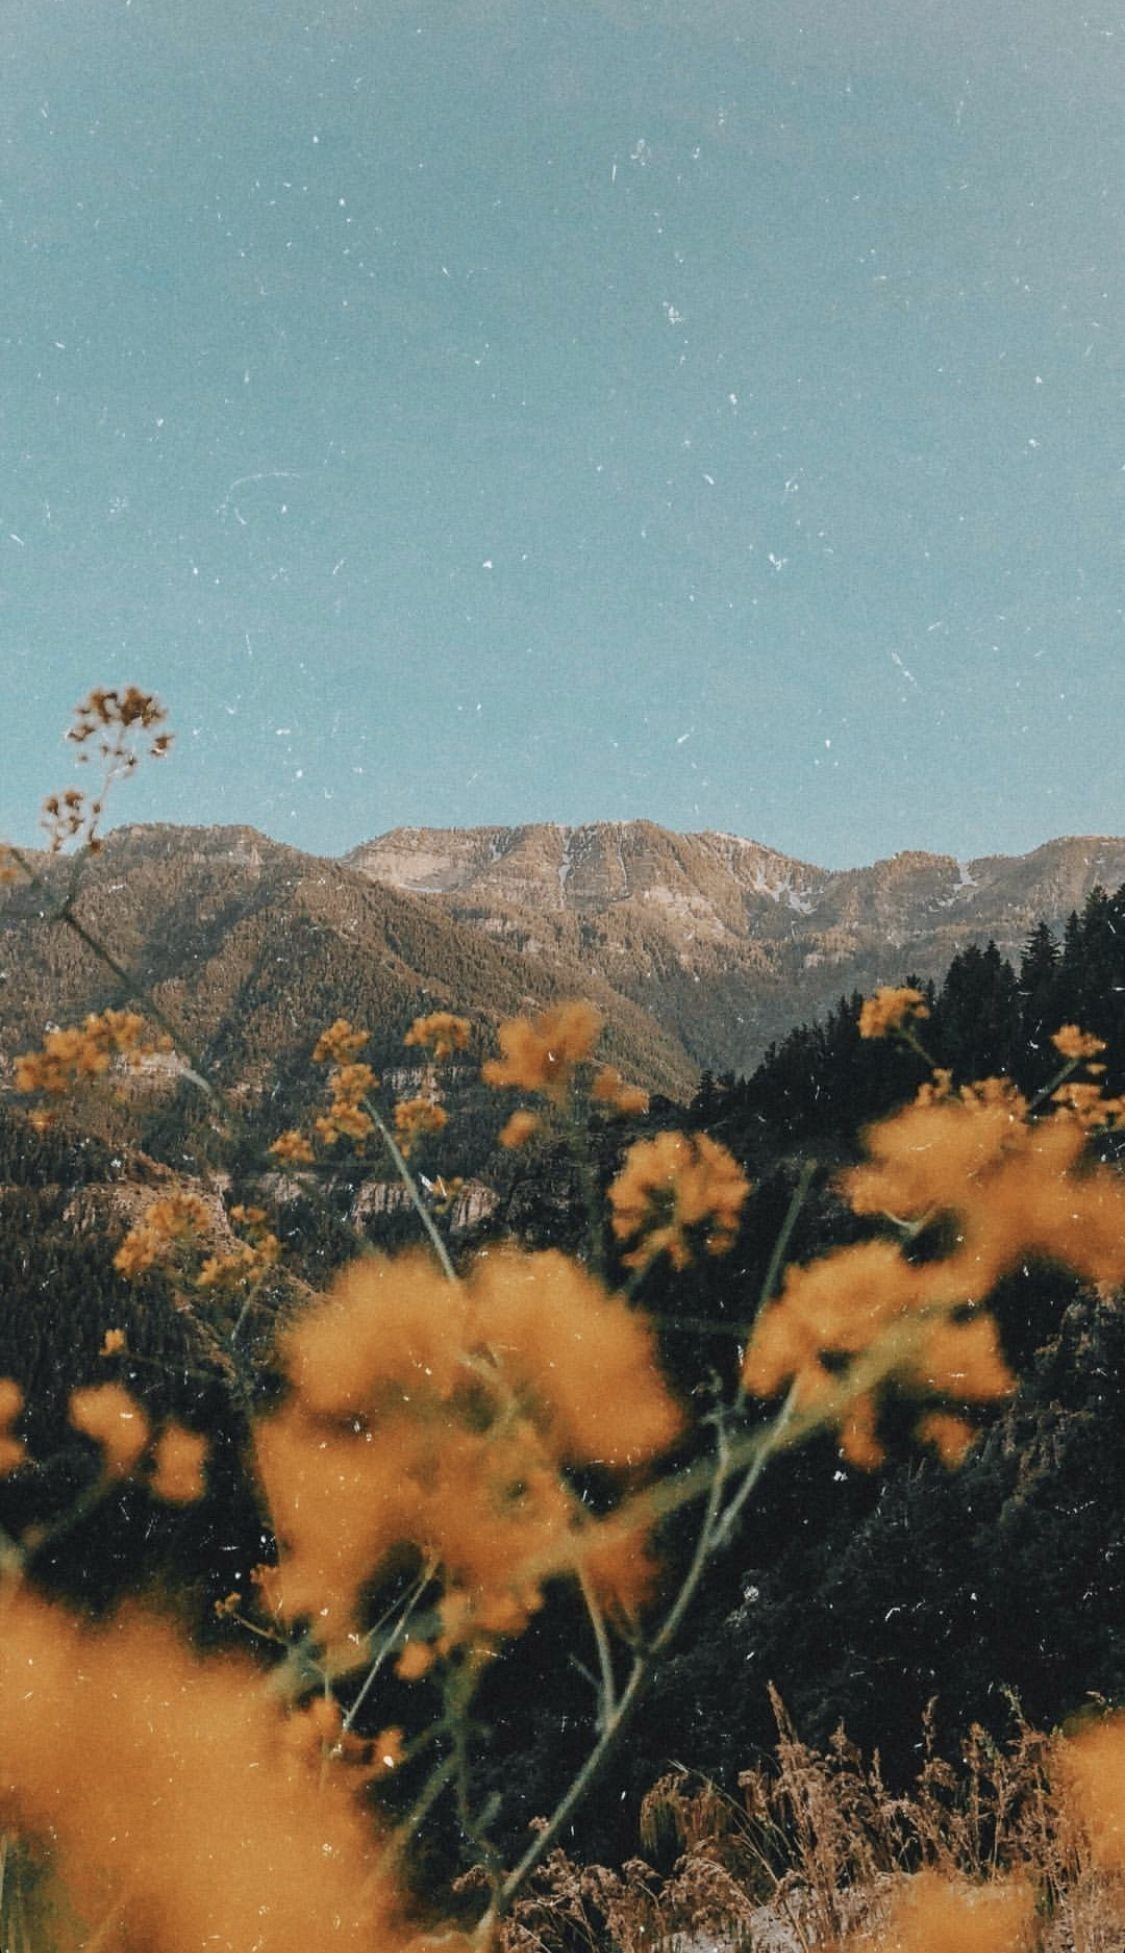 Movie Aesthetic Wallpapers Top Free Movie Aesthetic Backgrounds Wallpaperaccess